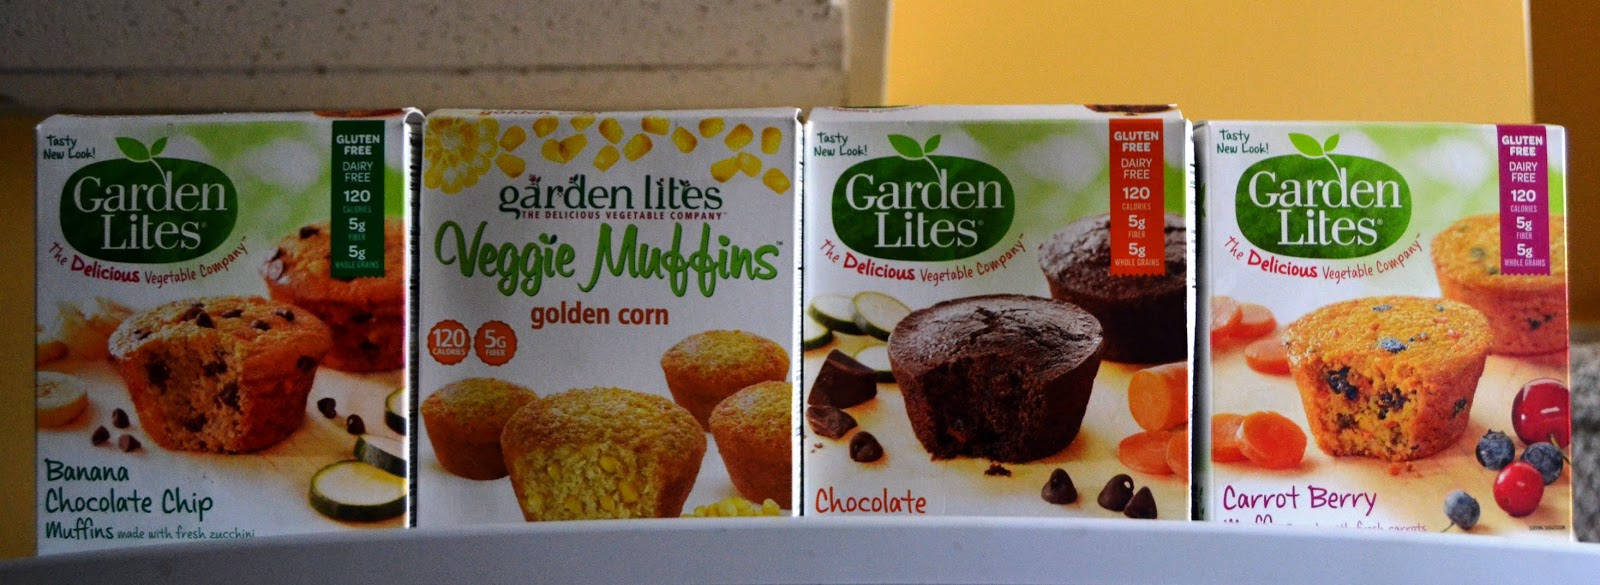 New food products review the nutritionist reviews - Garden lites blueberry oat muffins ...